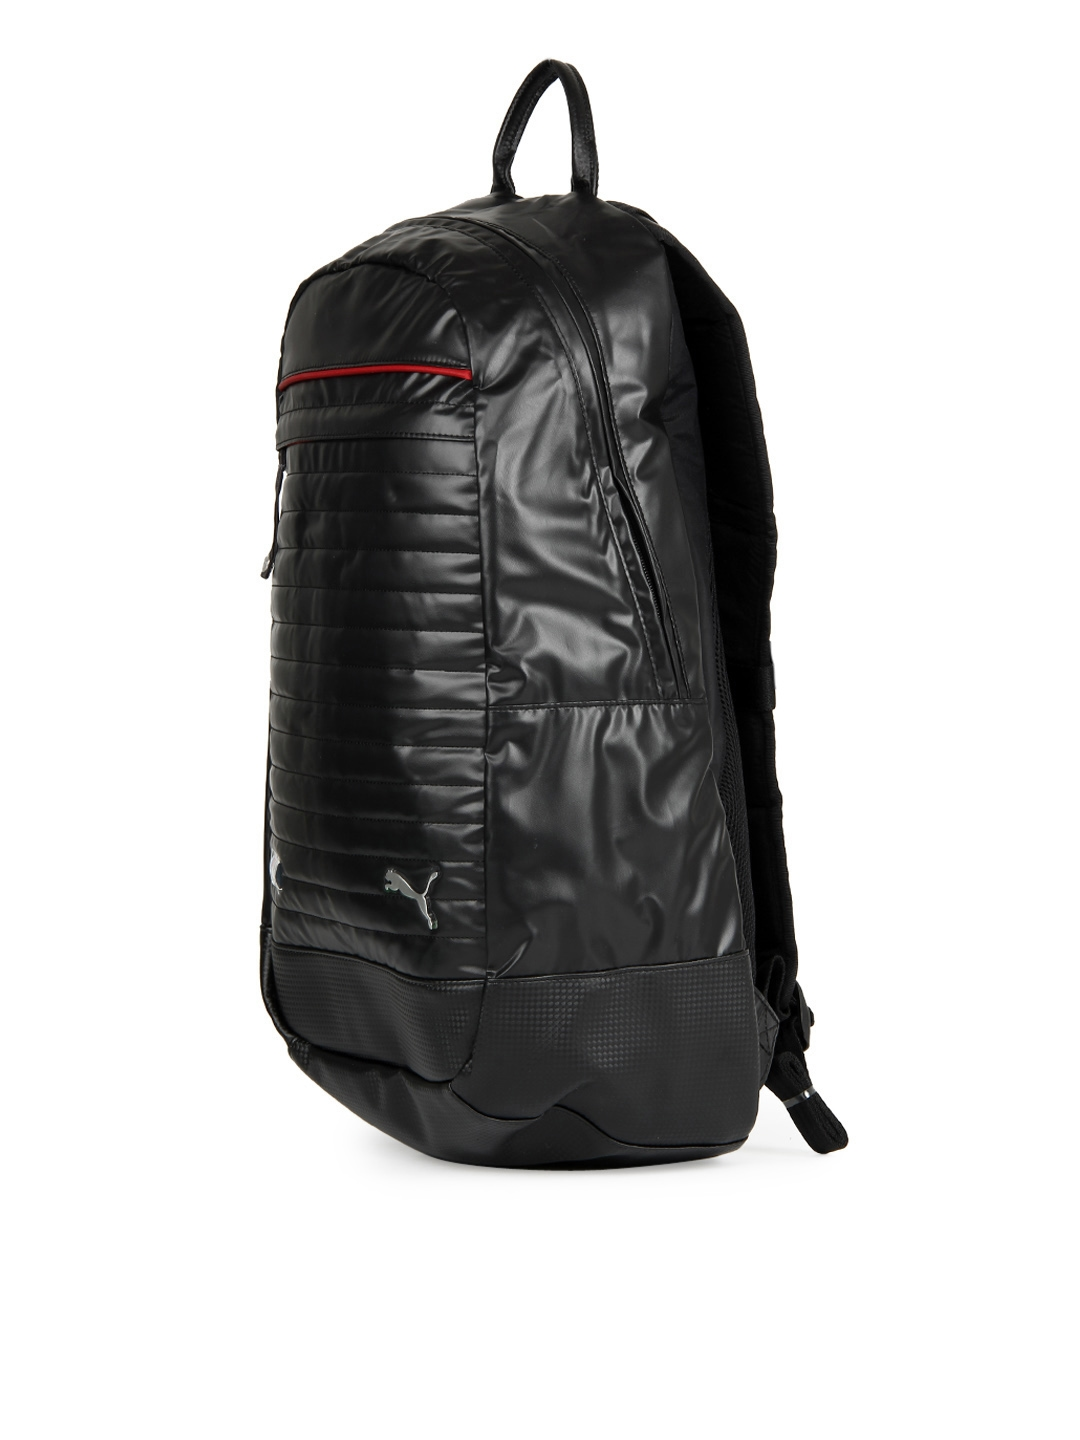 f8e6a9a228 Buy Puma Unisex Black BMW M Collection Backpack - Backpacks for ...